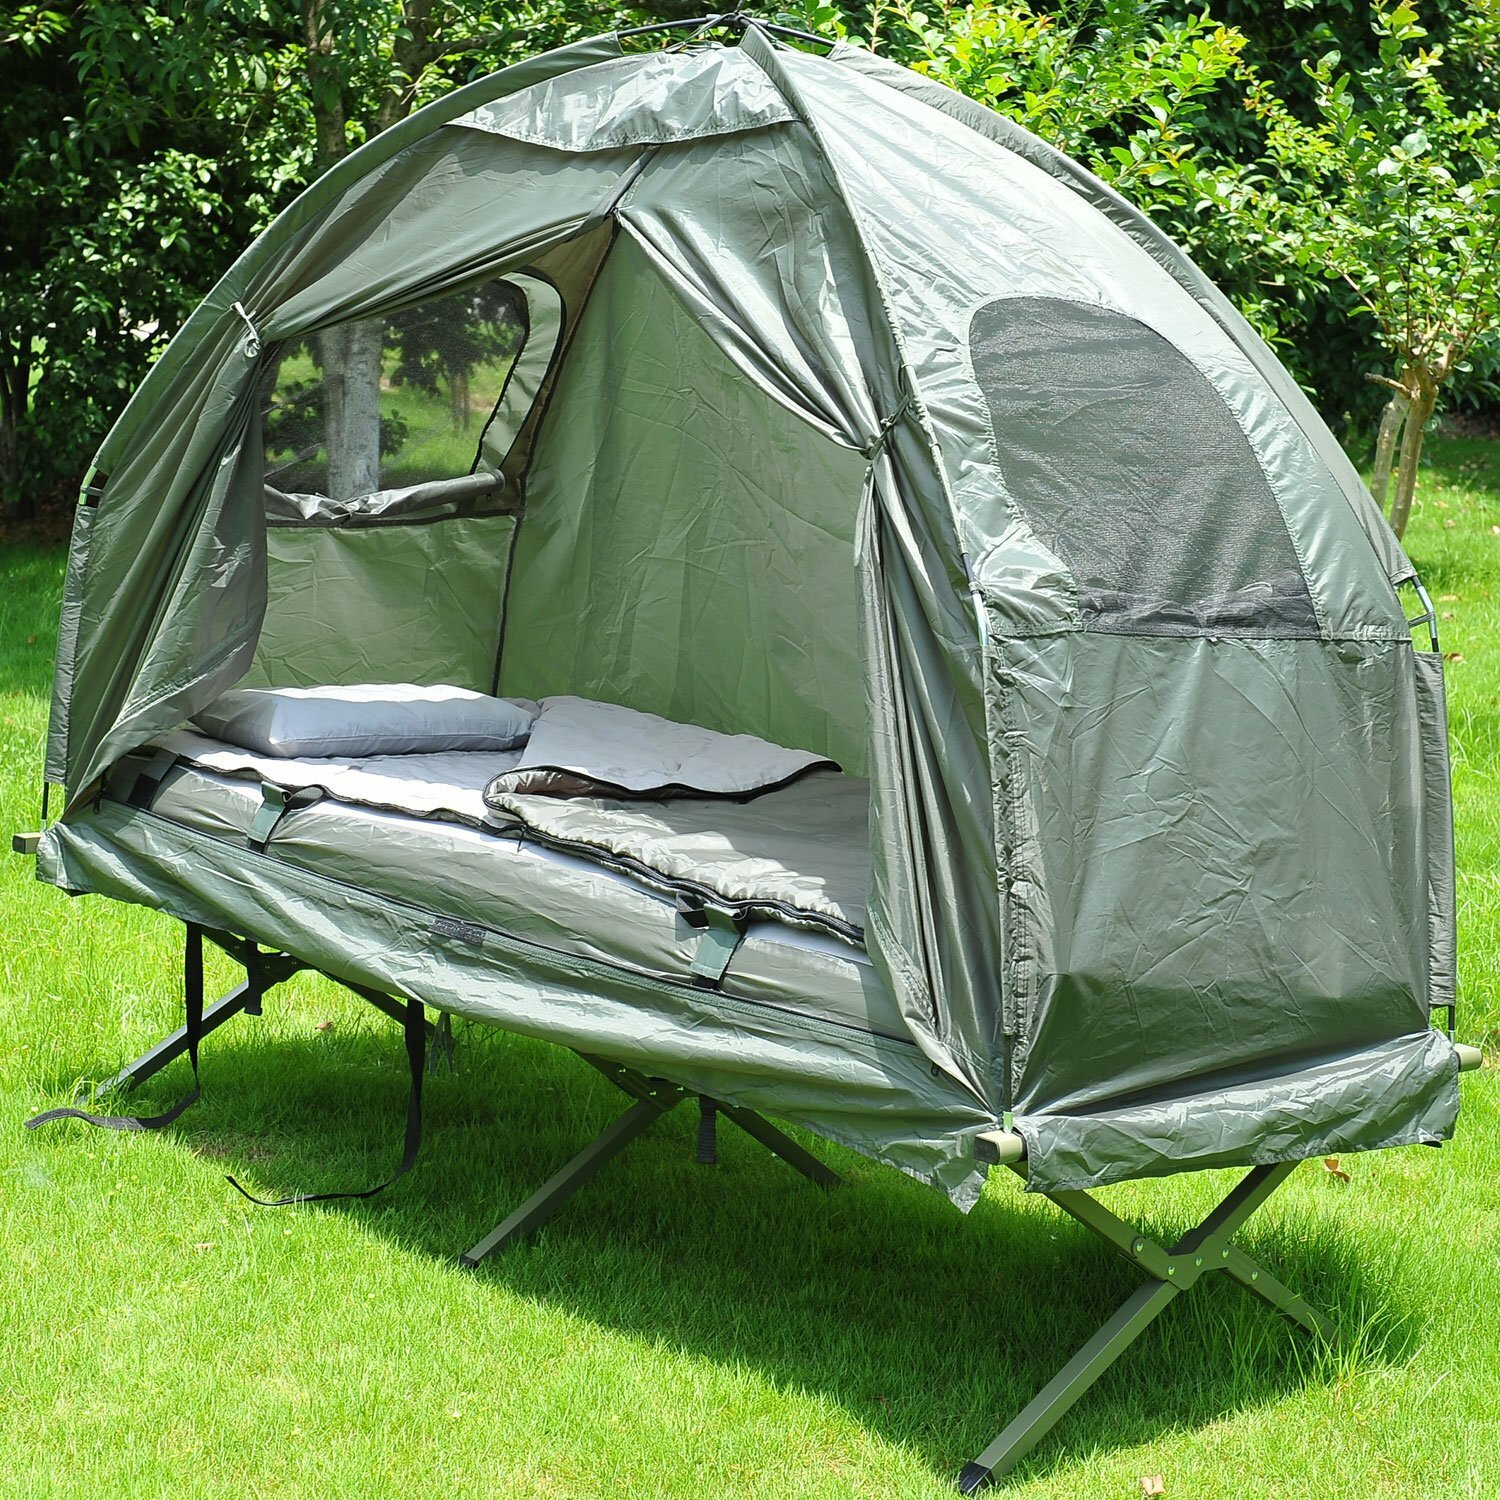 892a338d31 Outsunny Deluxe 4-in-1 Compact Folding Dome Shelter Tent with Sleeping Bag  Air Mattress Pillow & Reviews | Wayfair